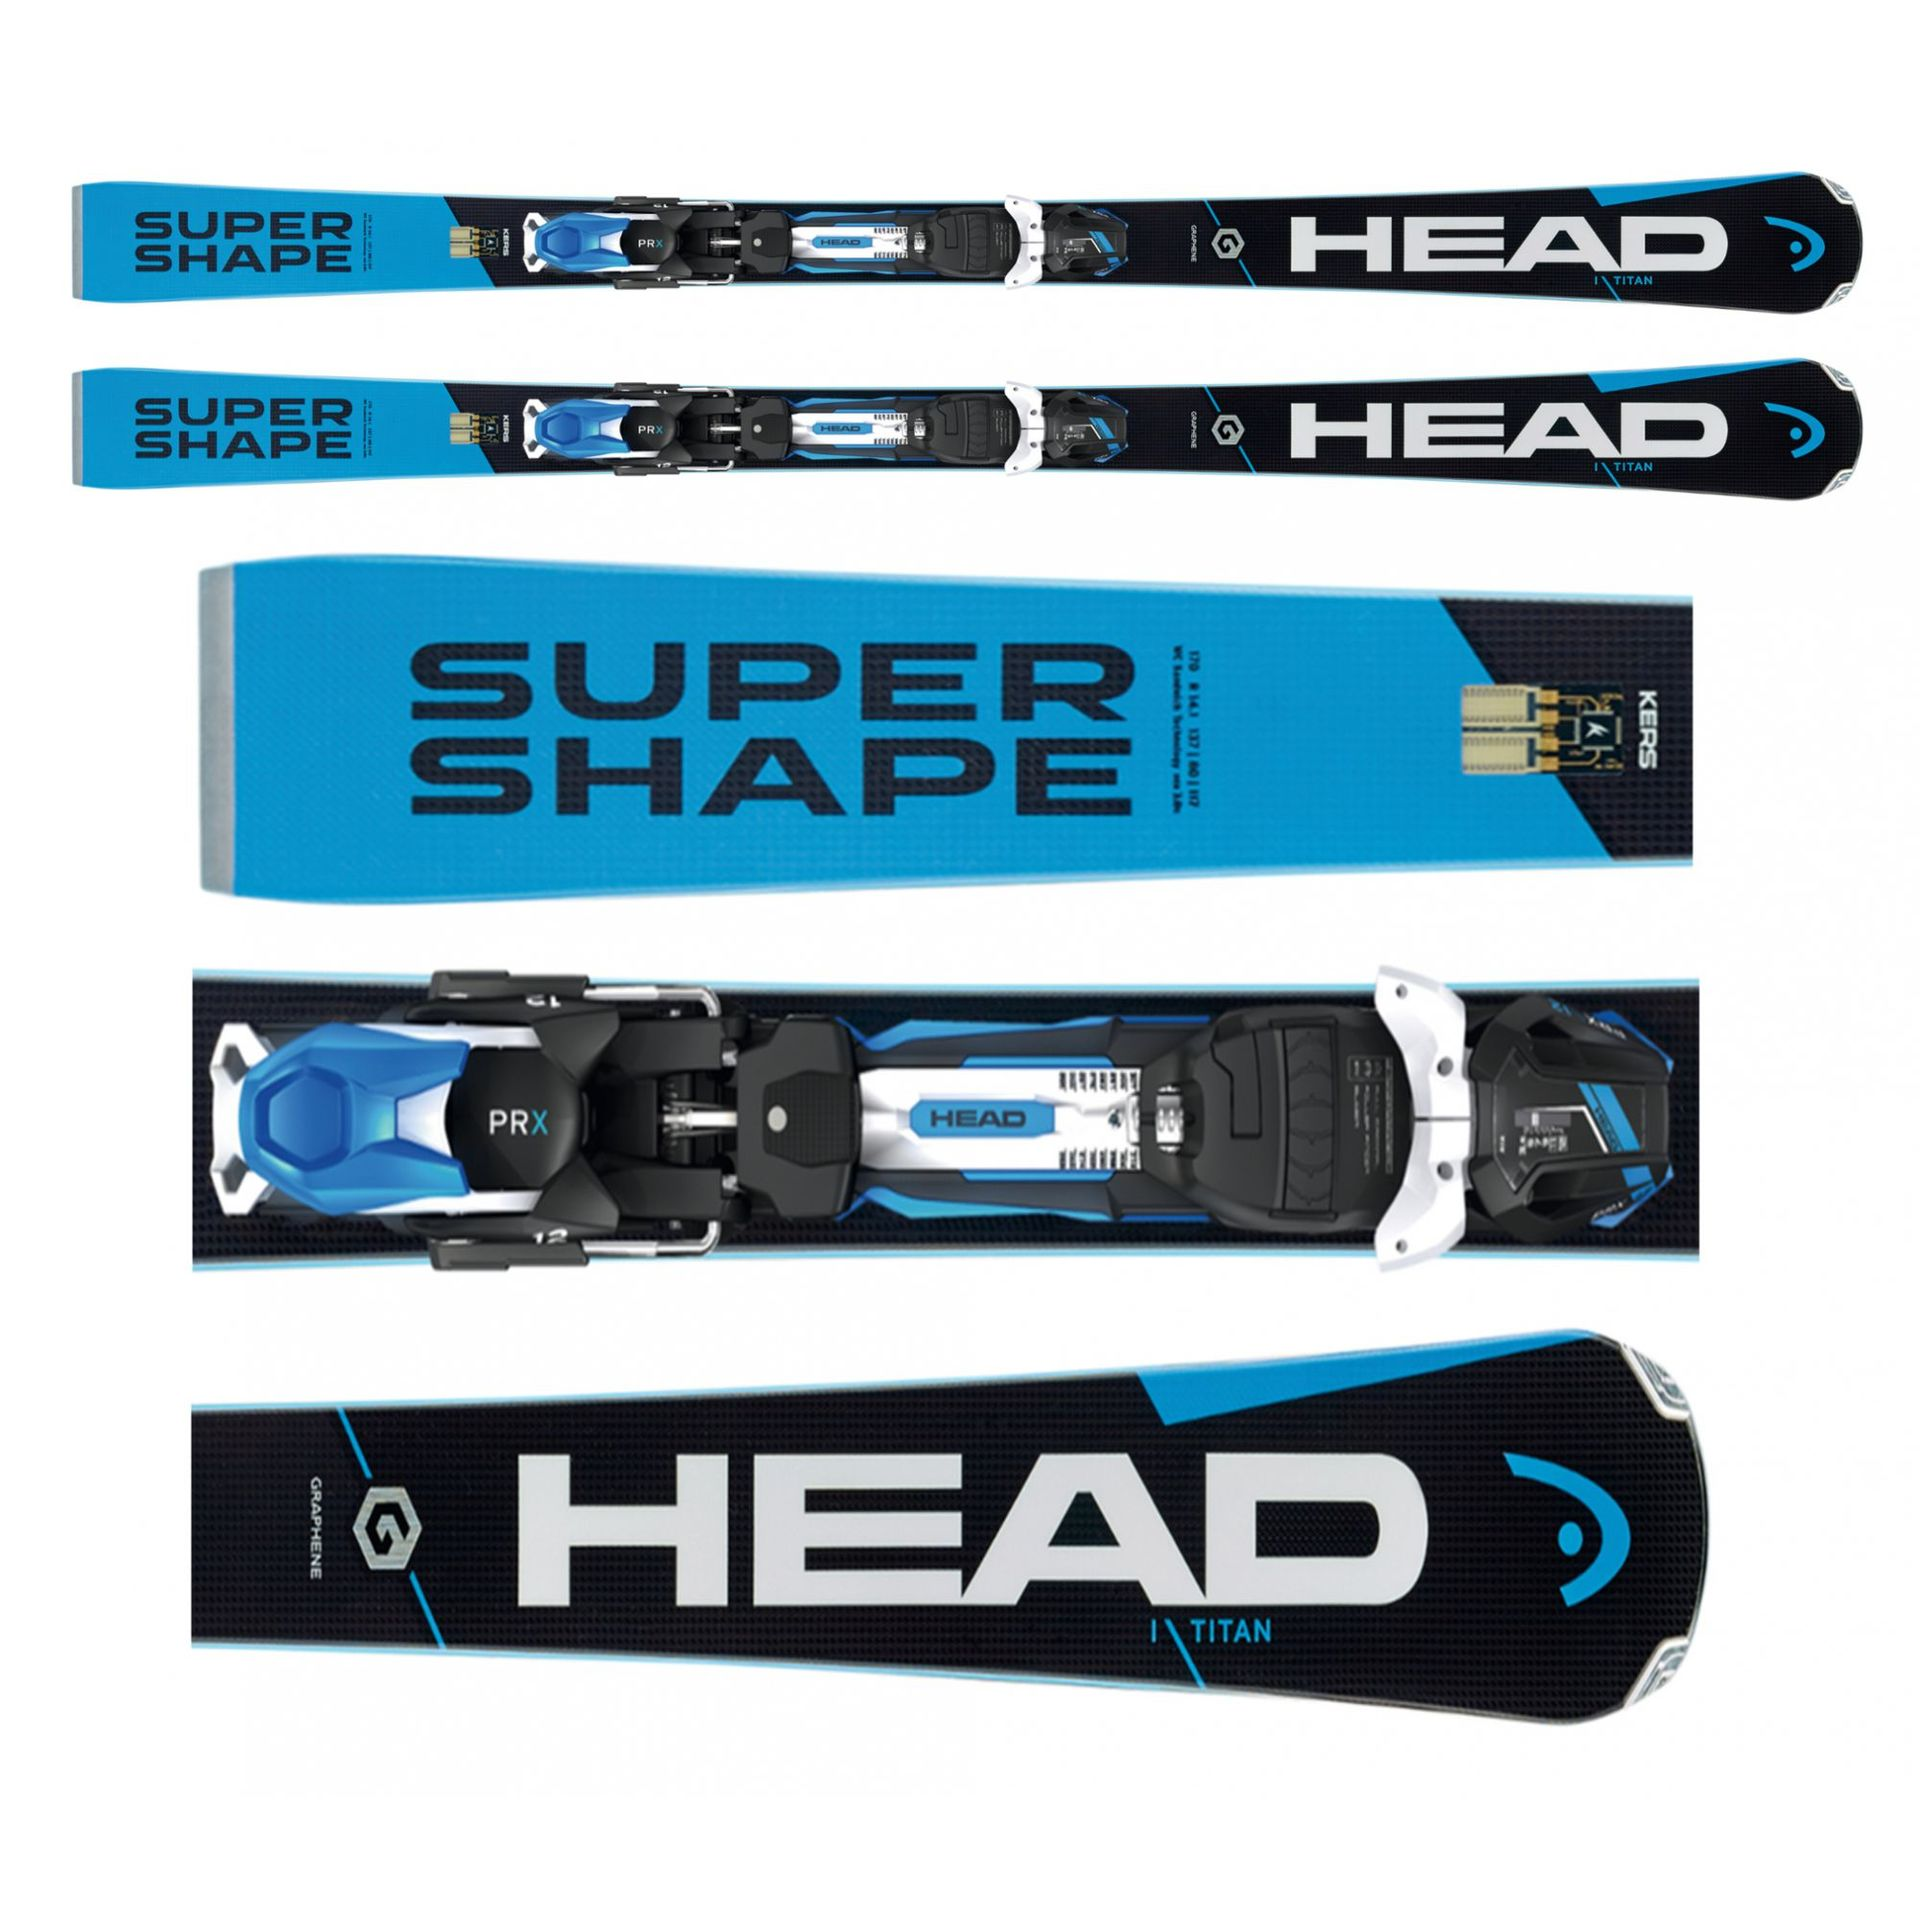 NARTY HEAD SUPERSHAPE I.TITAN